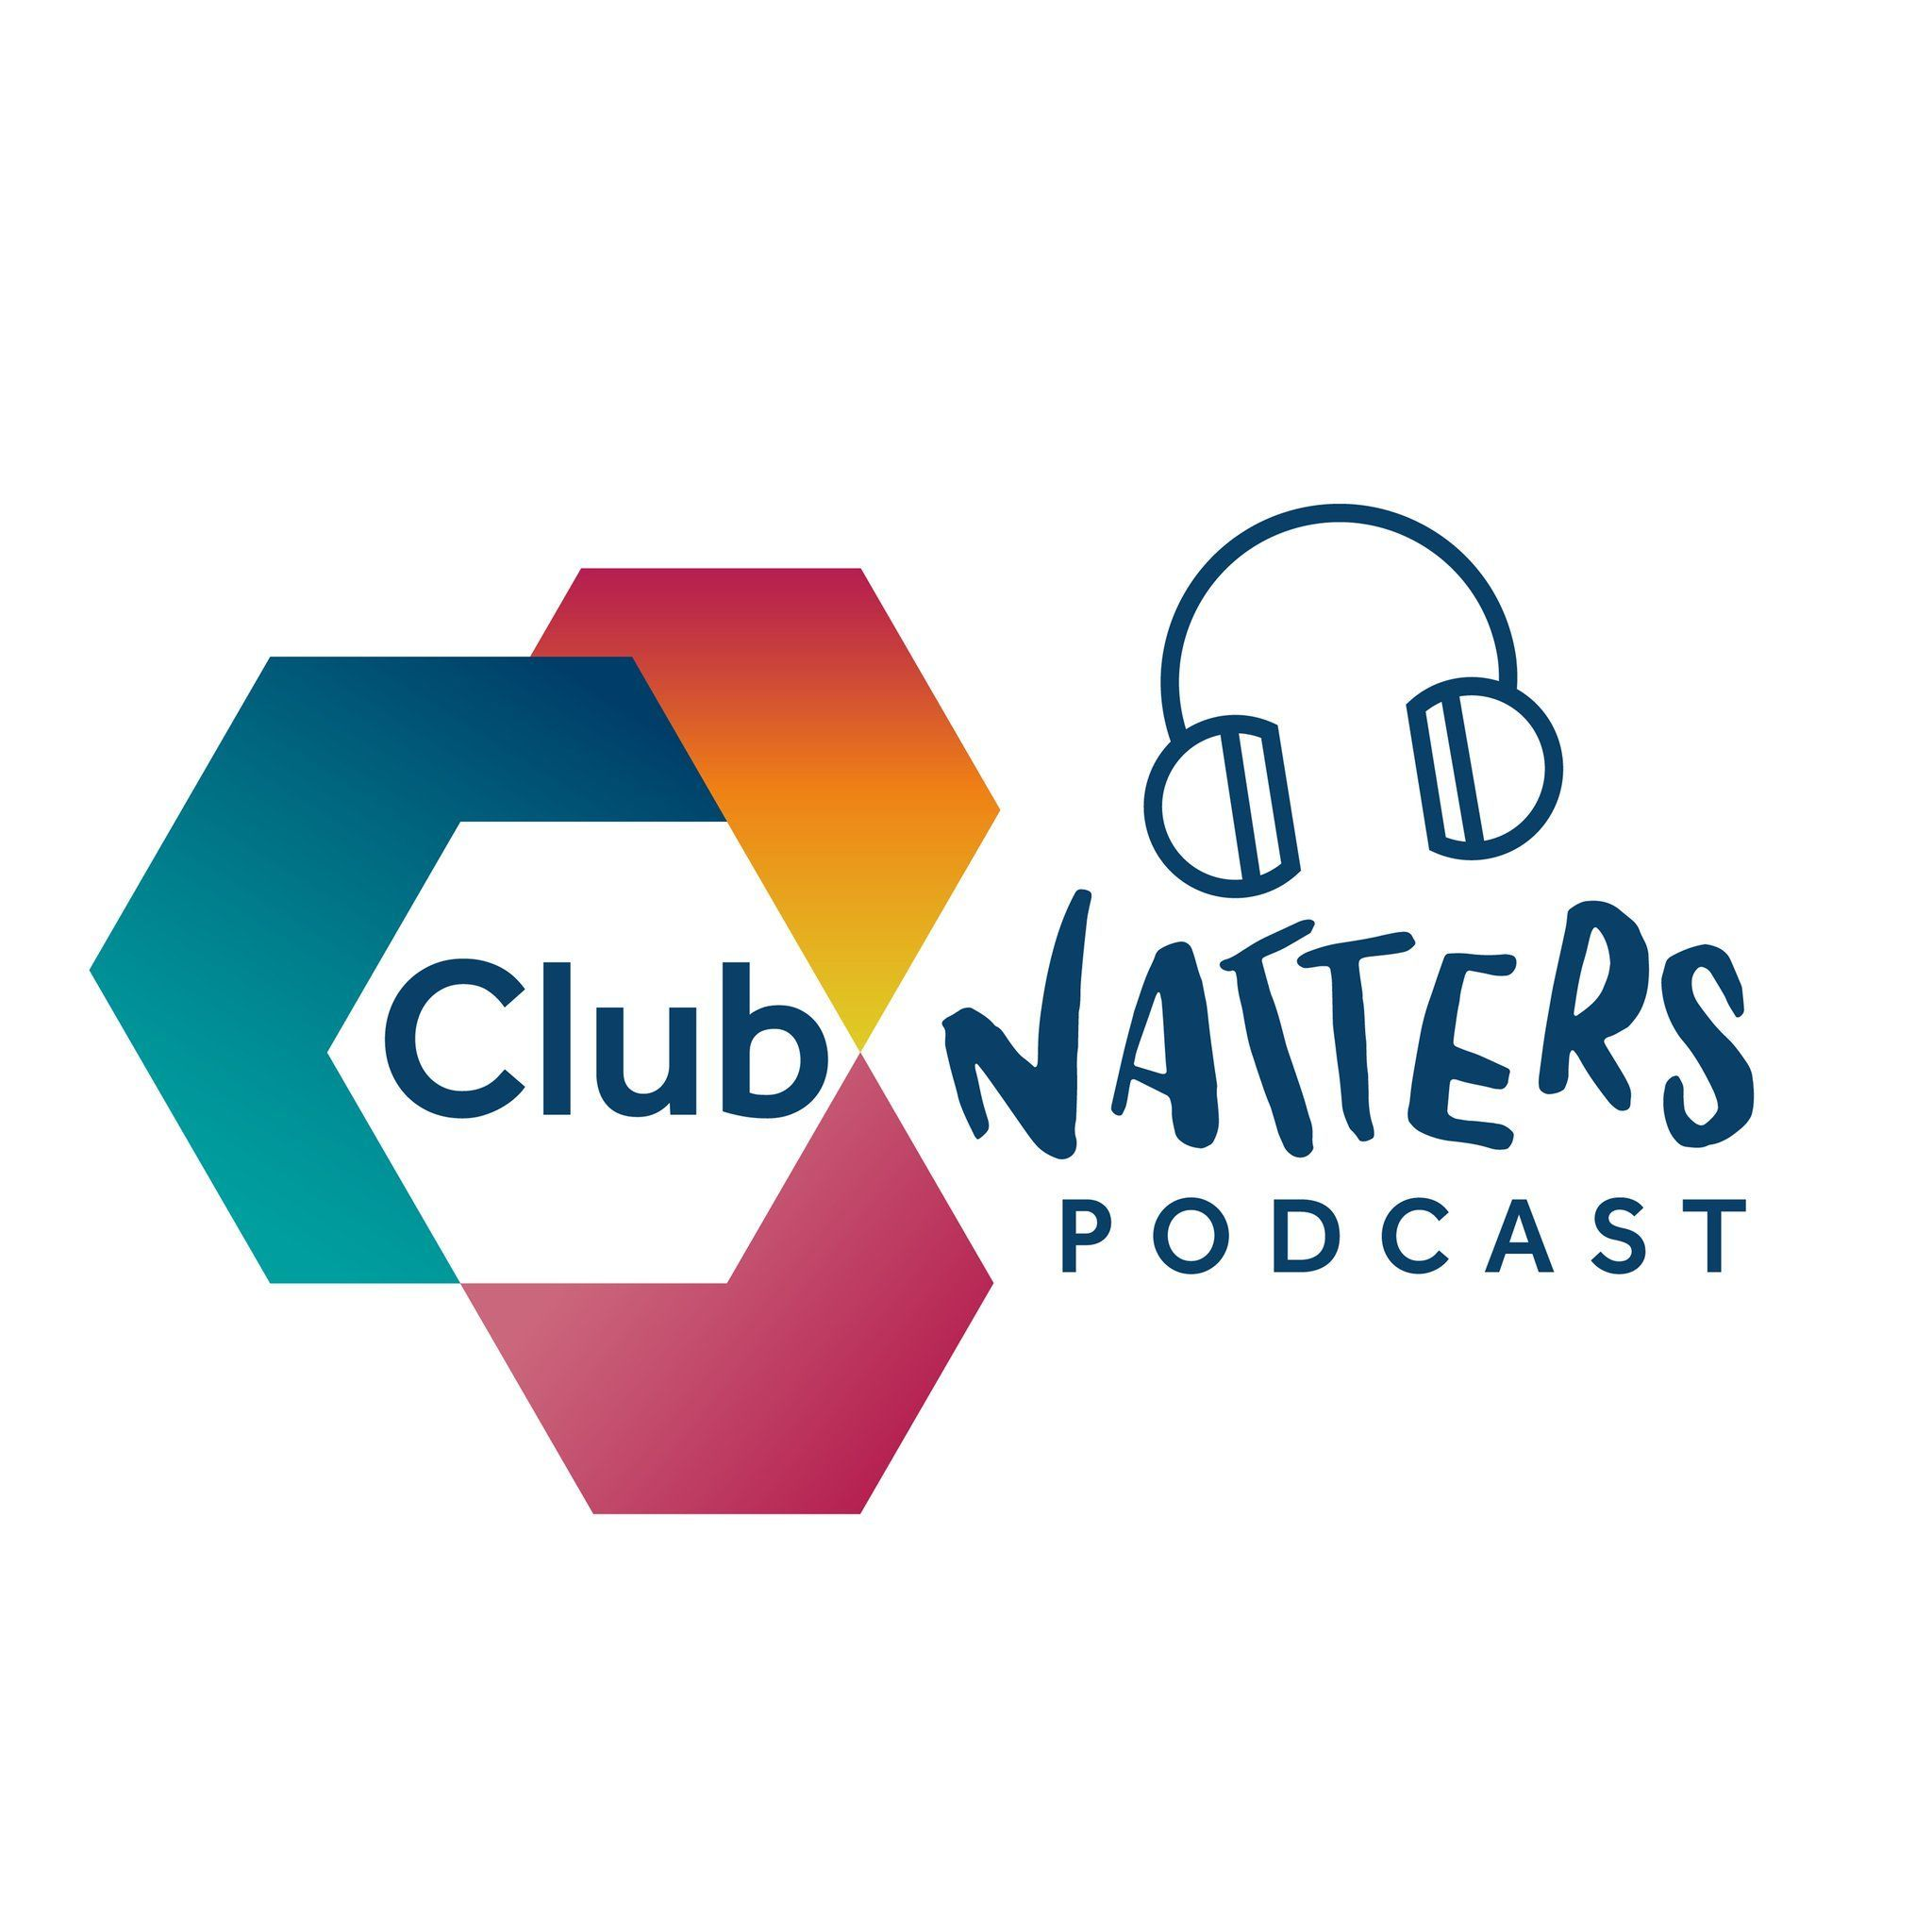 Financial Matters, Interview with England Rugby Star and Challenges for Small Clubs